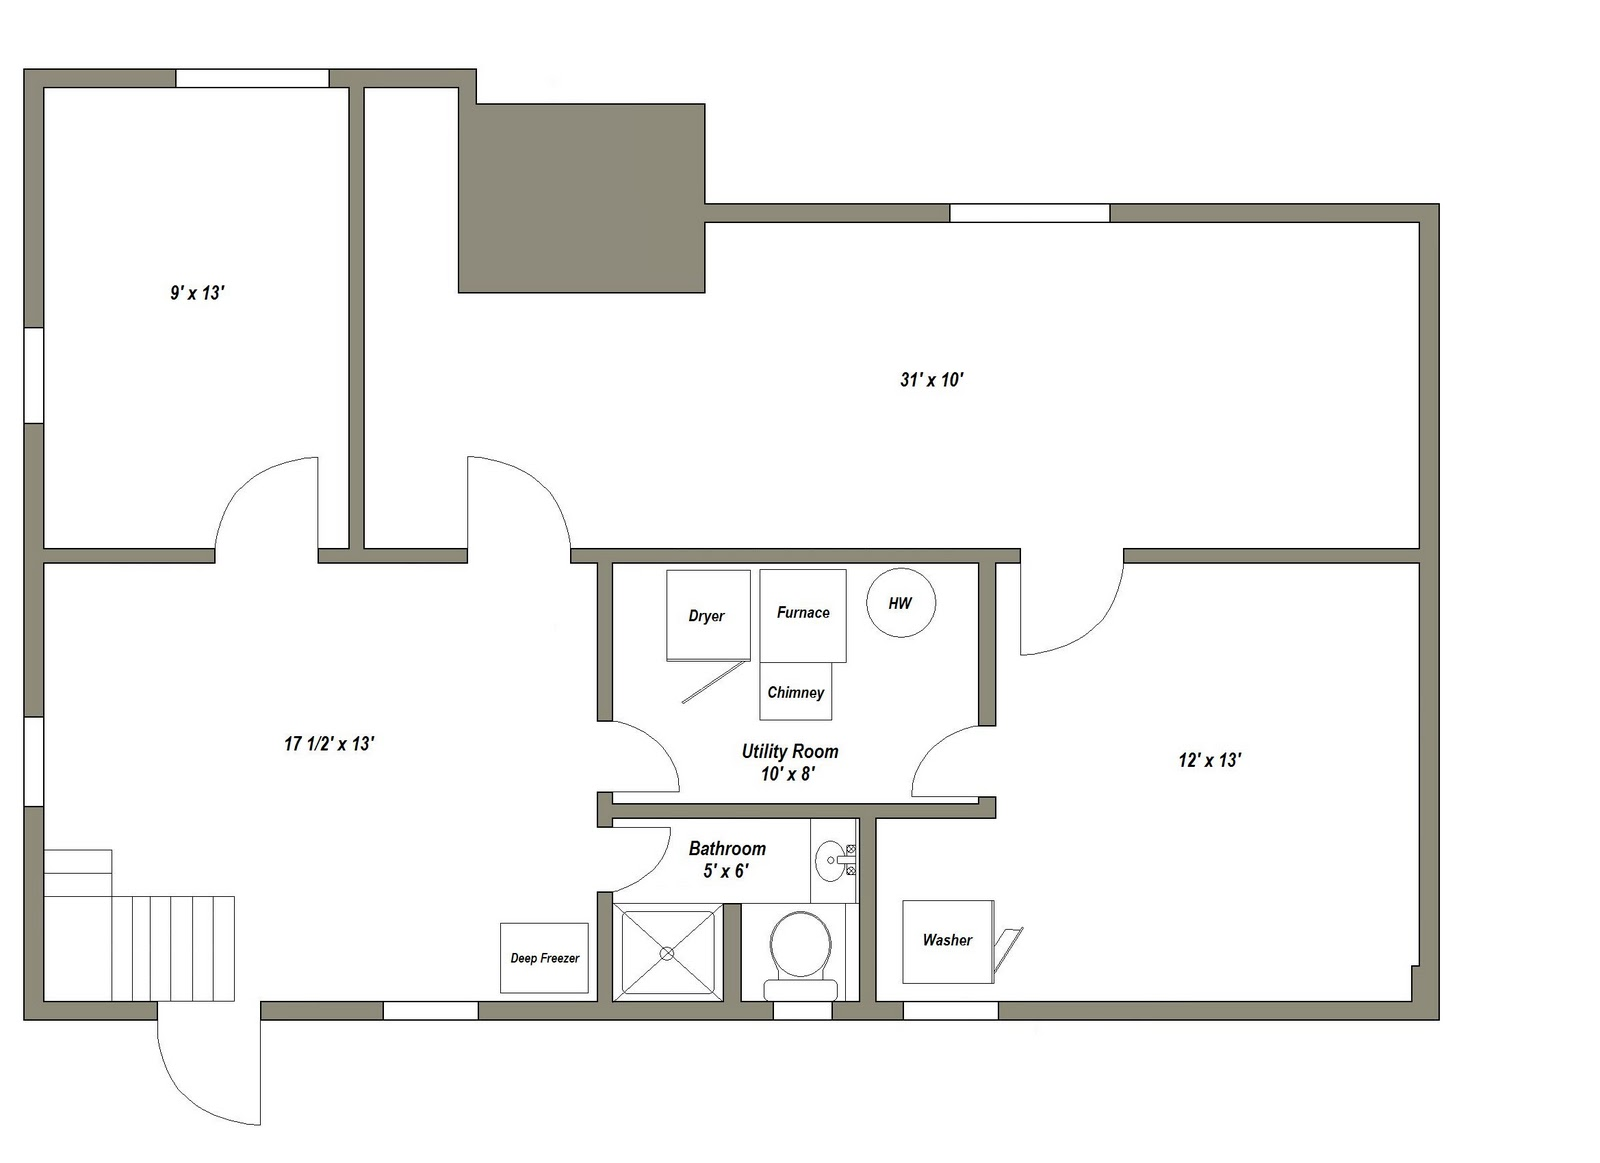 Stunning small basement floor plans 22 photos house plans 21742 - Bedroom house plans with basement decoration ...